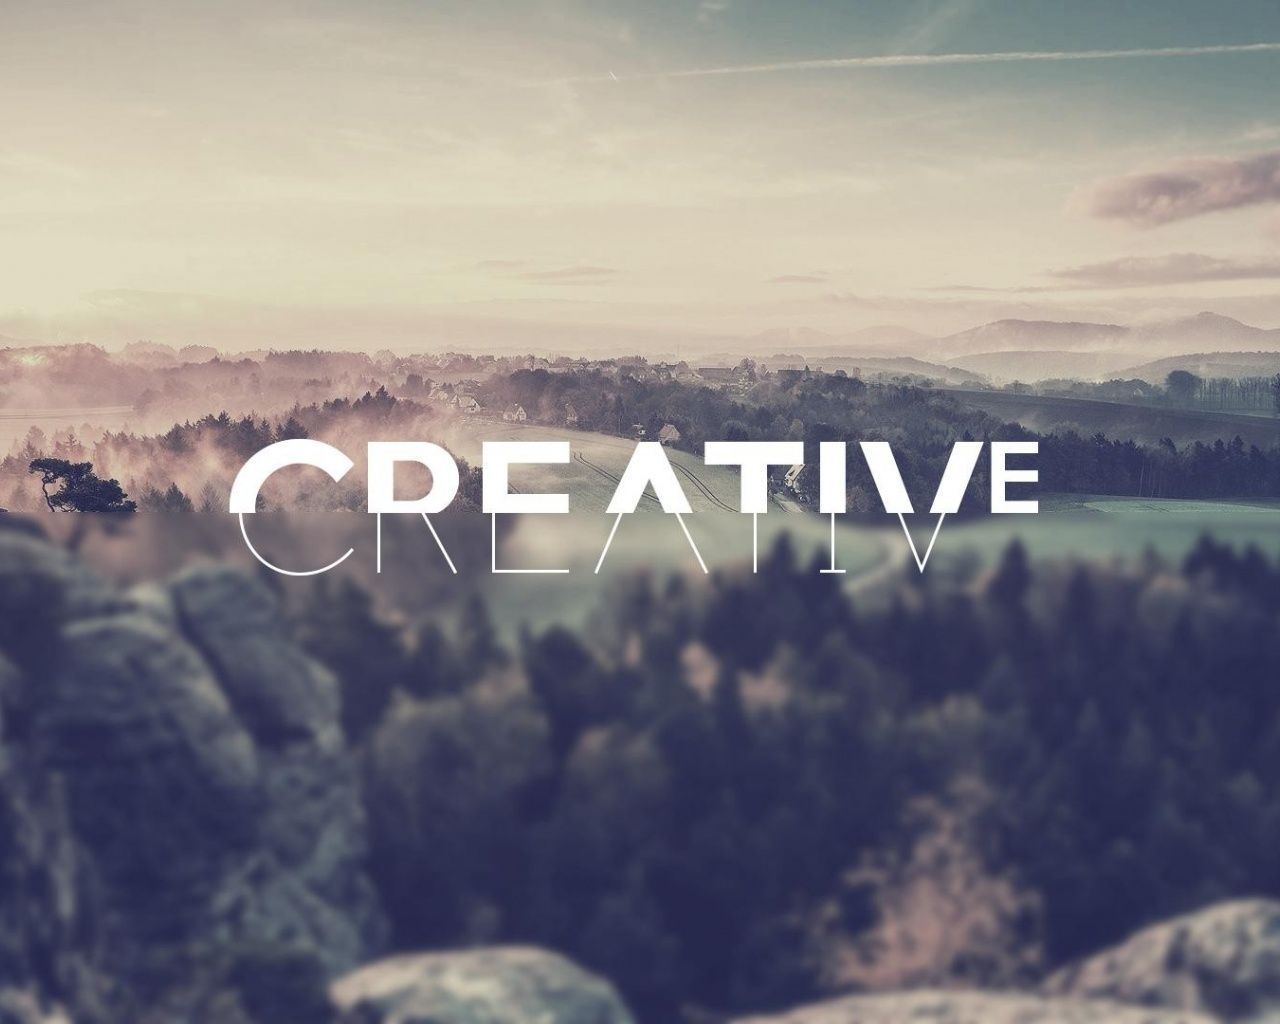 Creative Wallpaper Creative Wallpapers Hipster